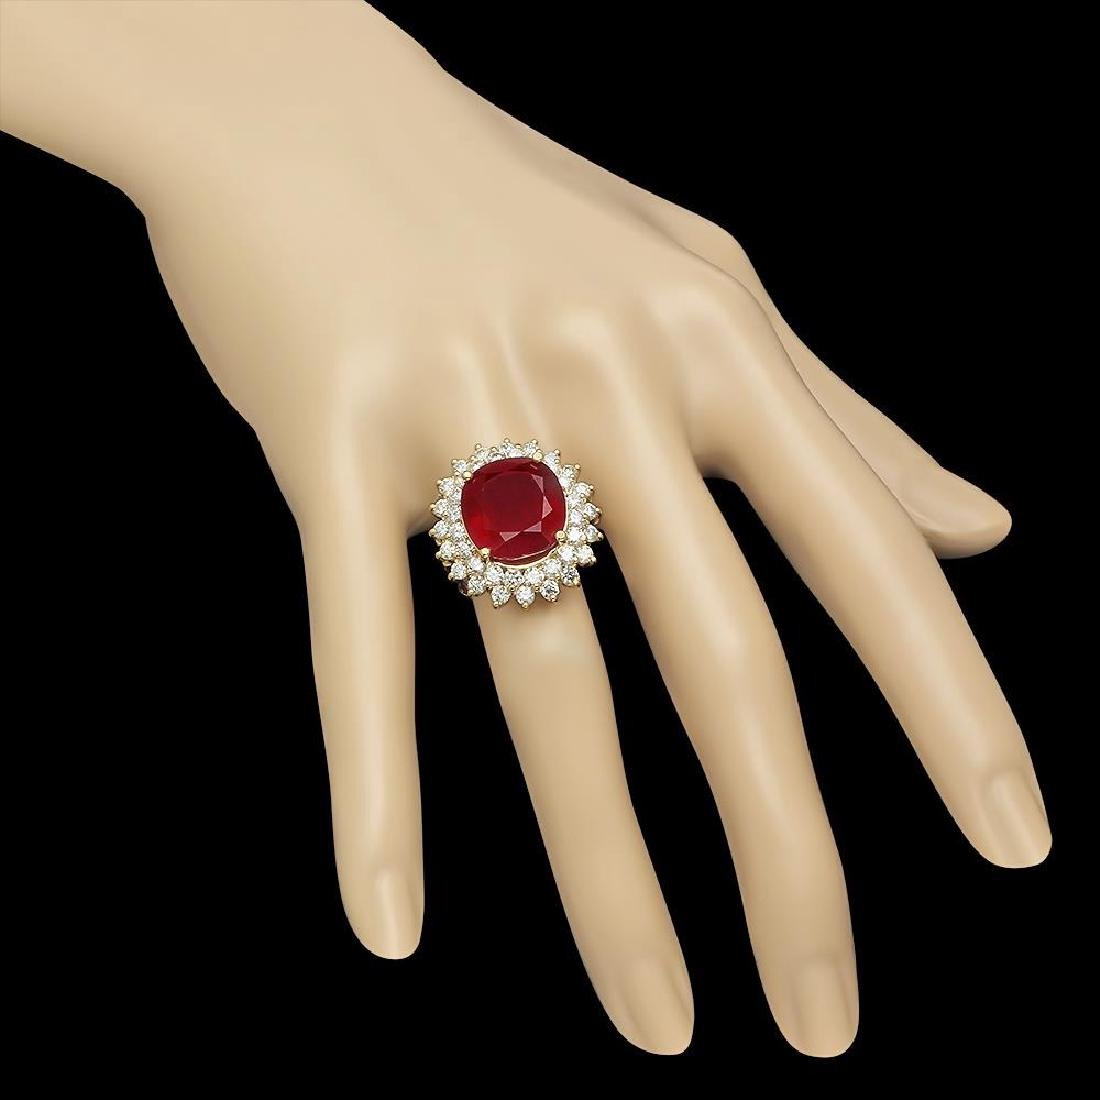 14K Gold 14.38ct Ruby 2.38ct Diamond Ring - 3